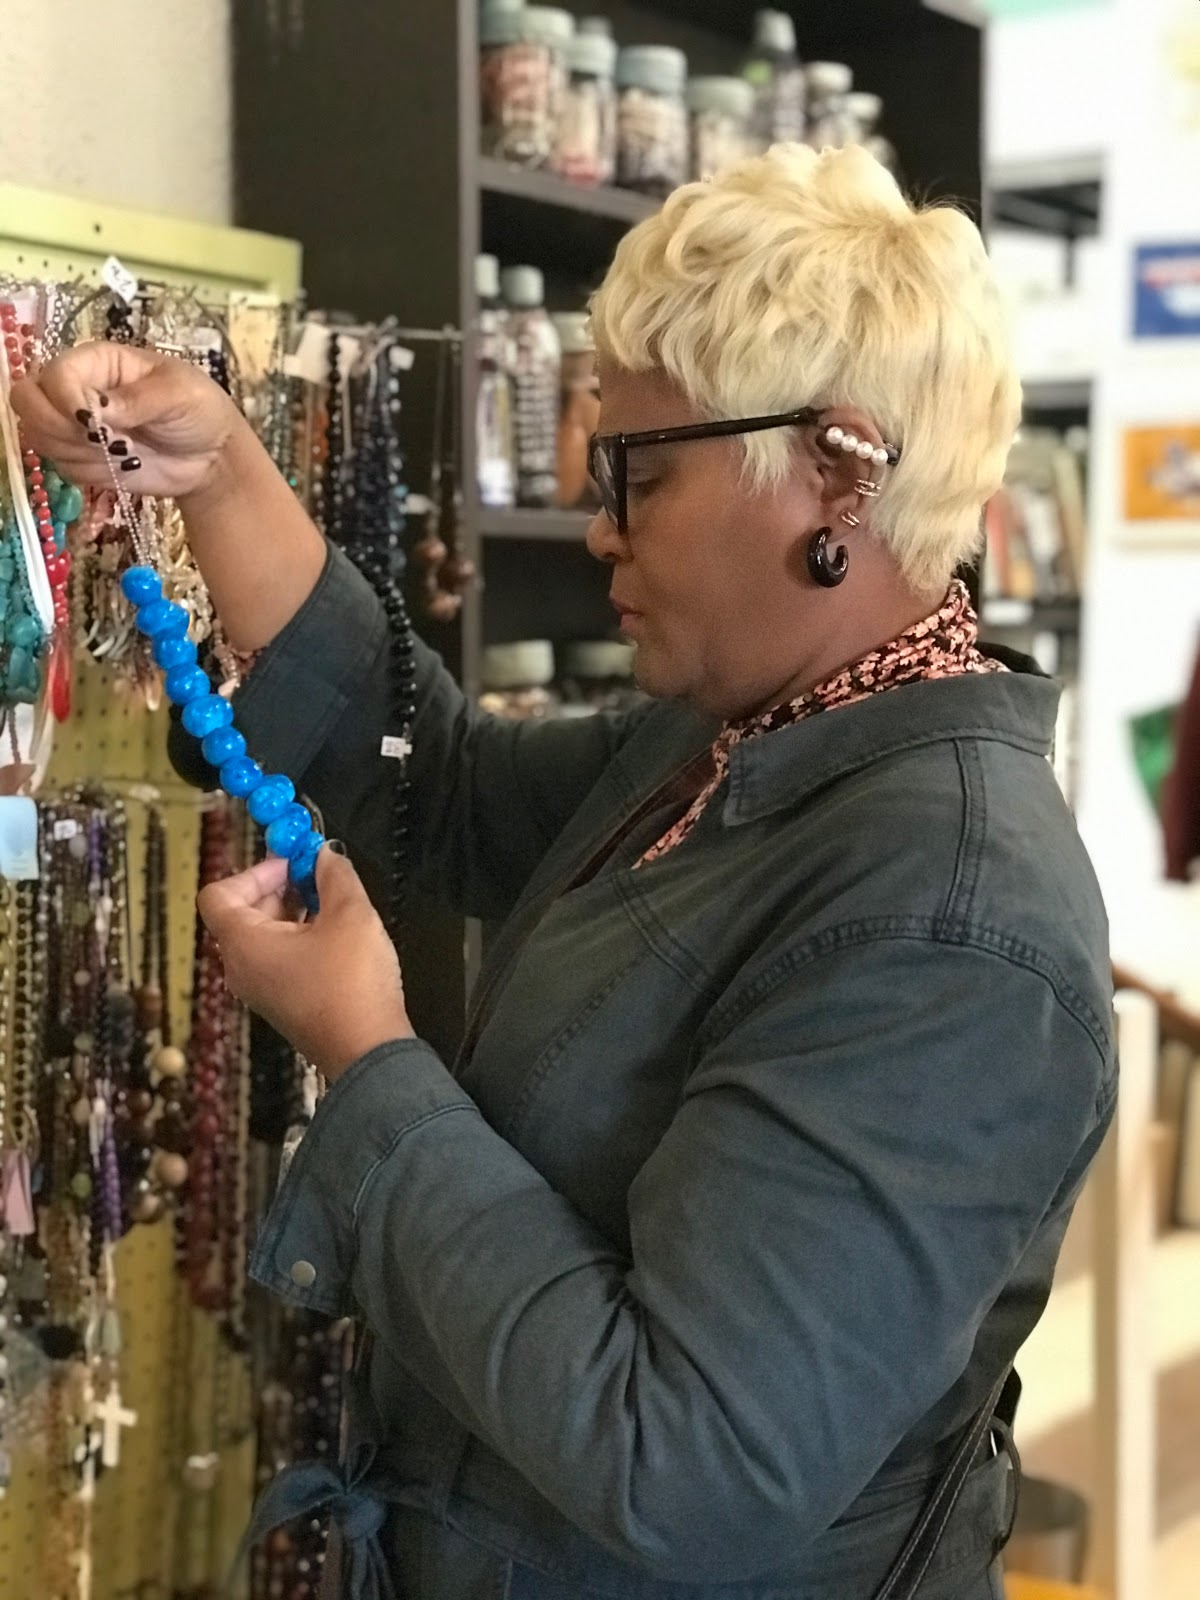 Tangie Bell trying on marble secondhand jewelry. Thrift snooping